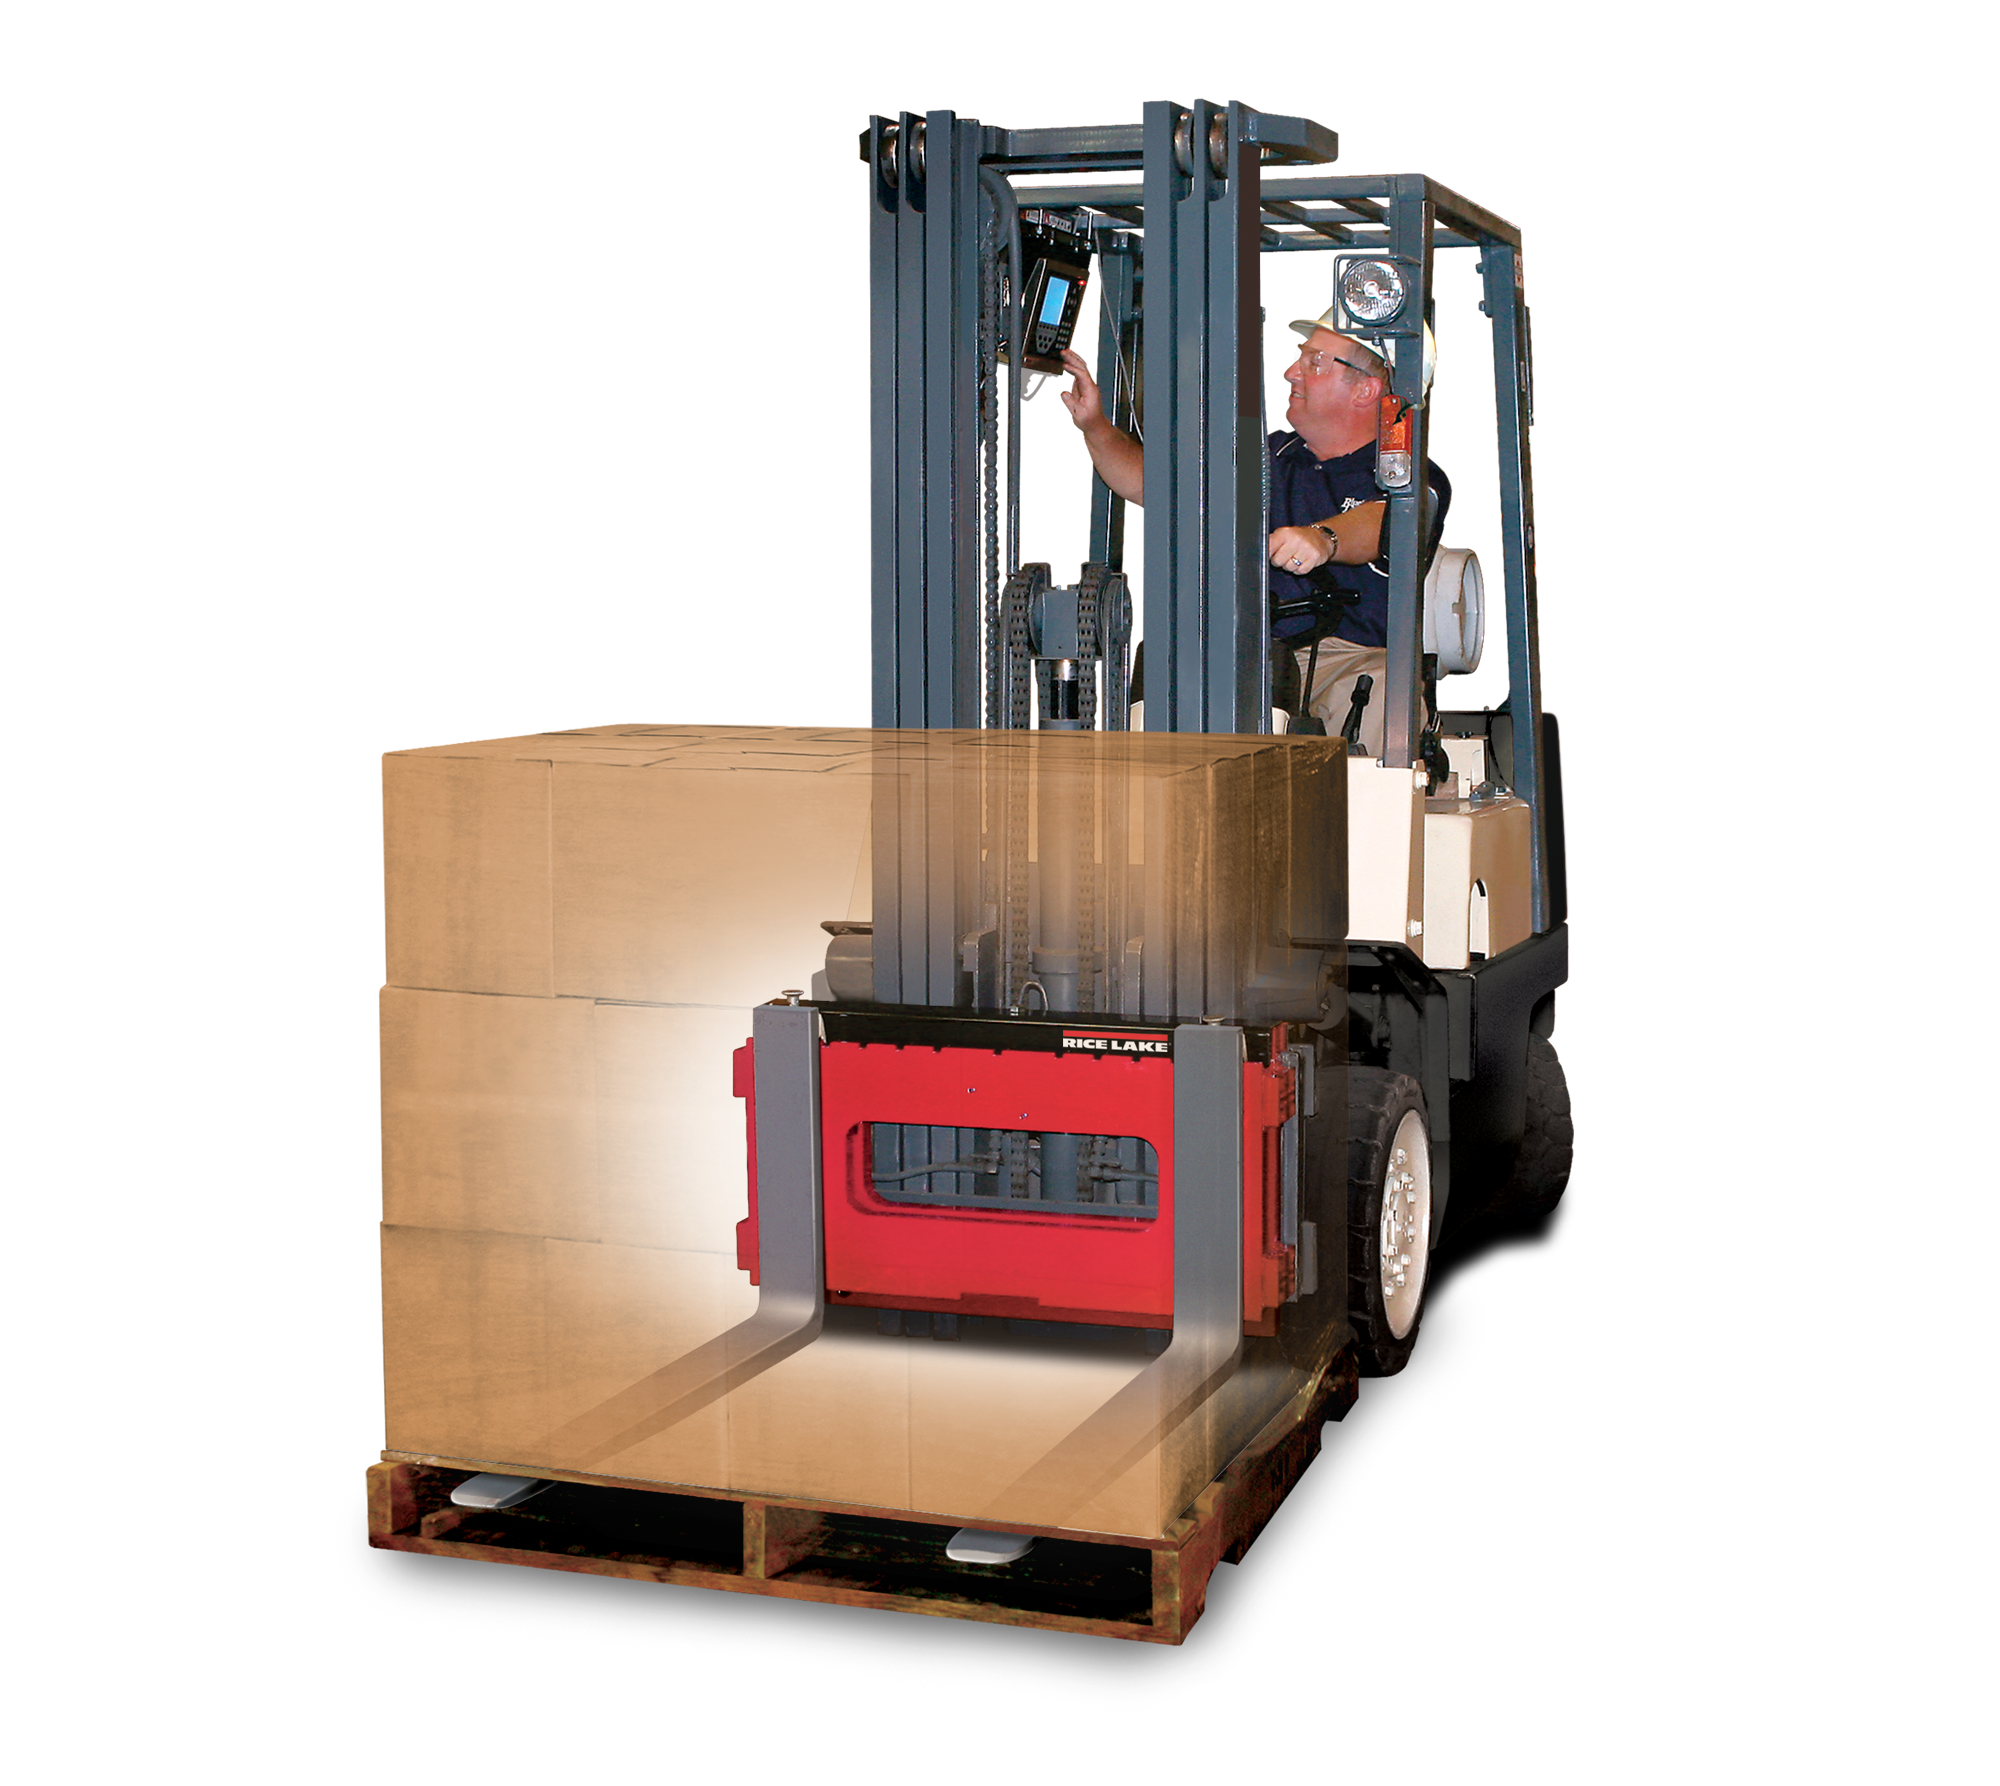 Forklift drawing truck. Cls i scale view